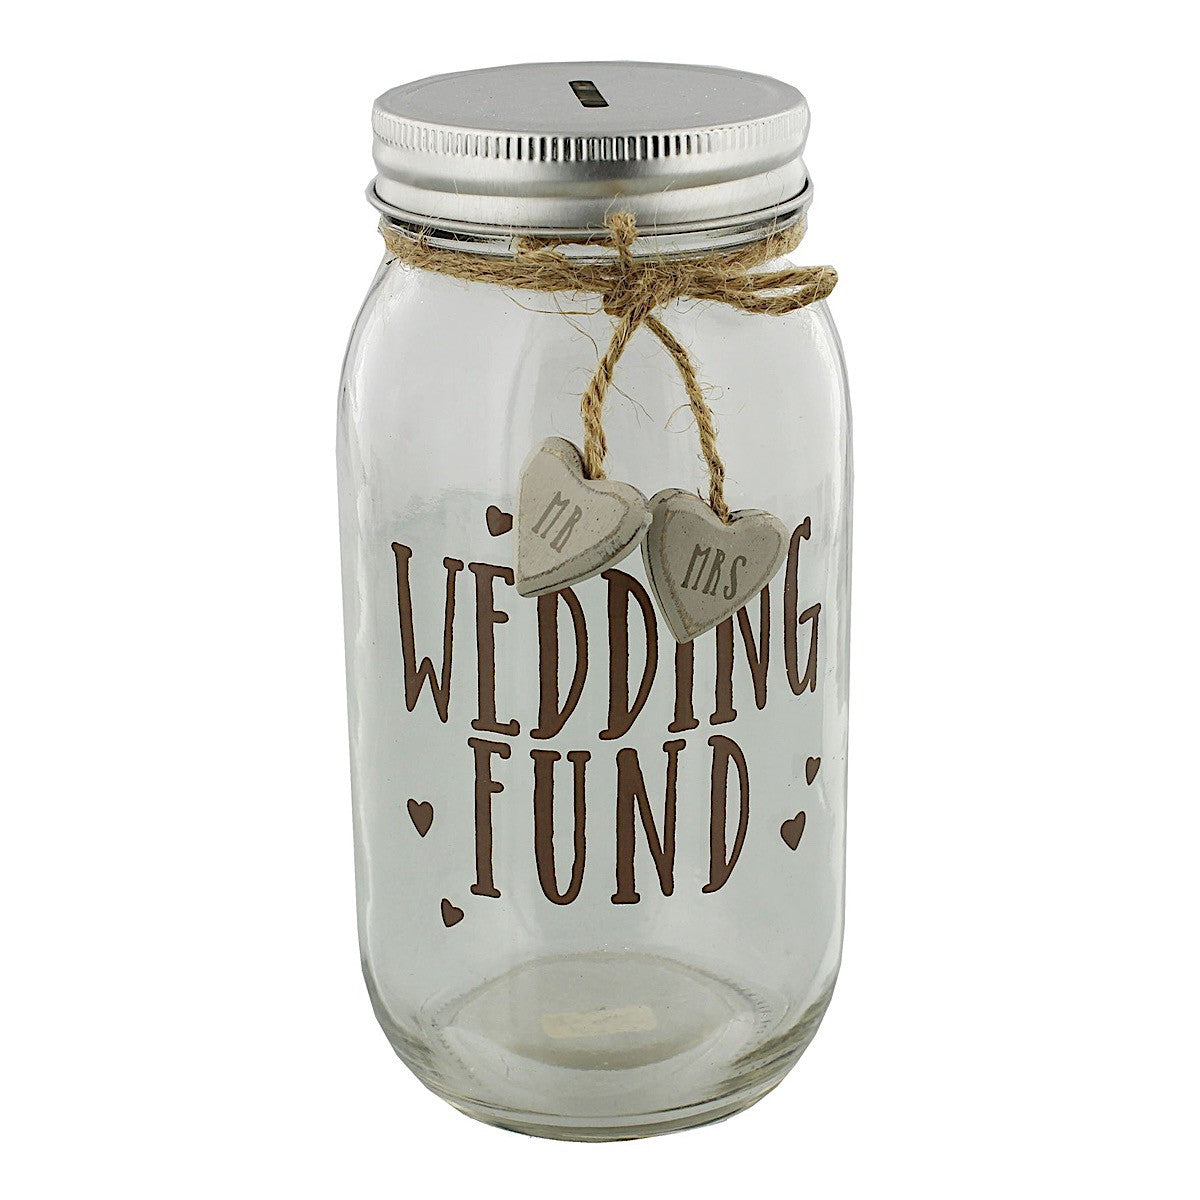 Love Story Mr & Mrs Wedding Fund Money Box | More Than Just at Gift | Narborough Hall